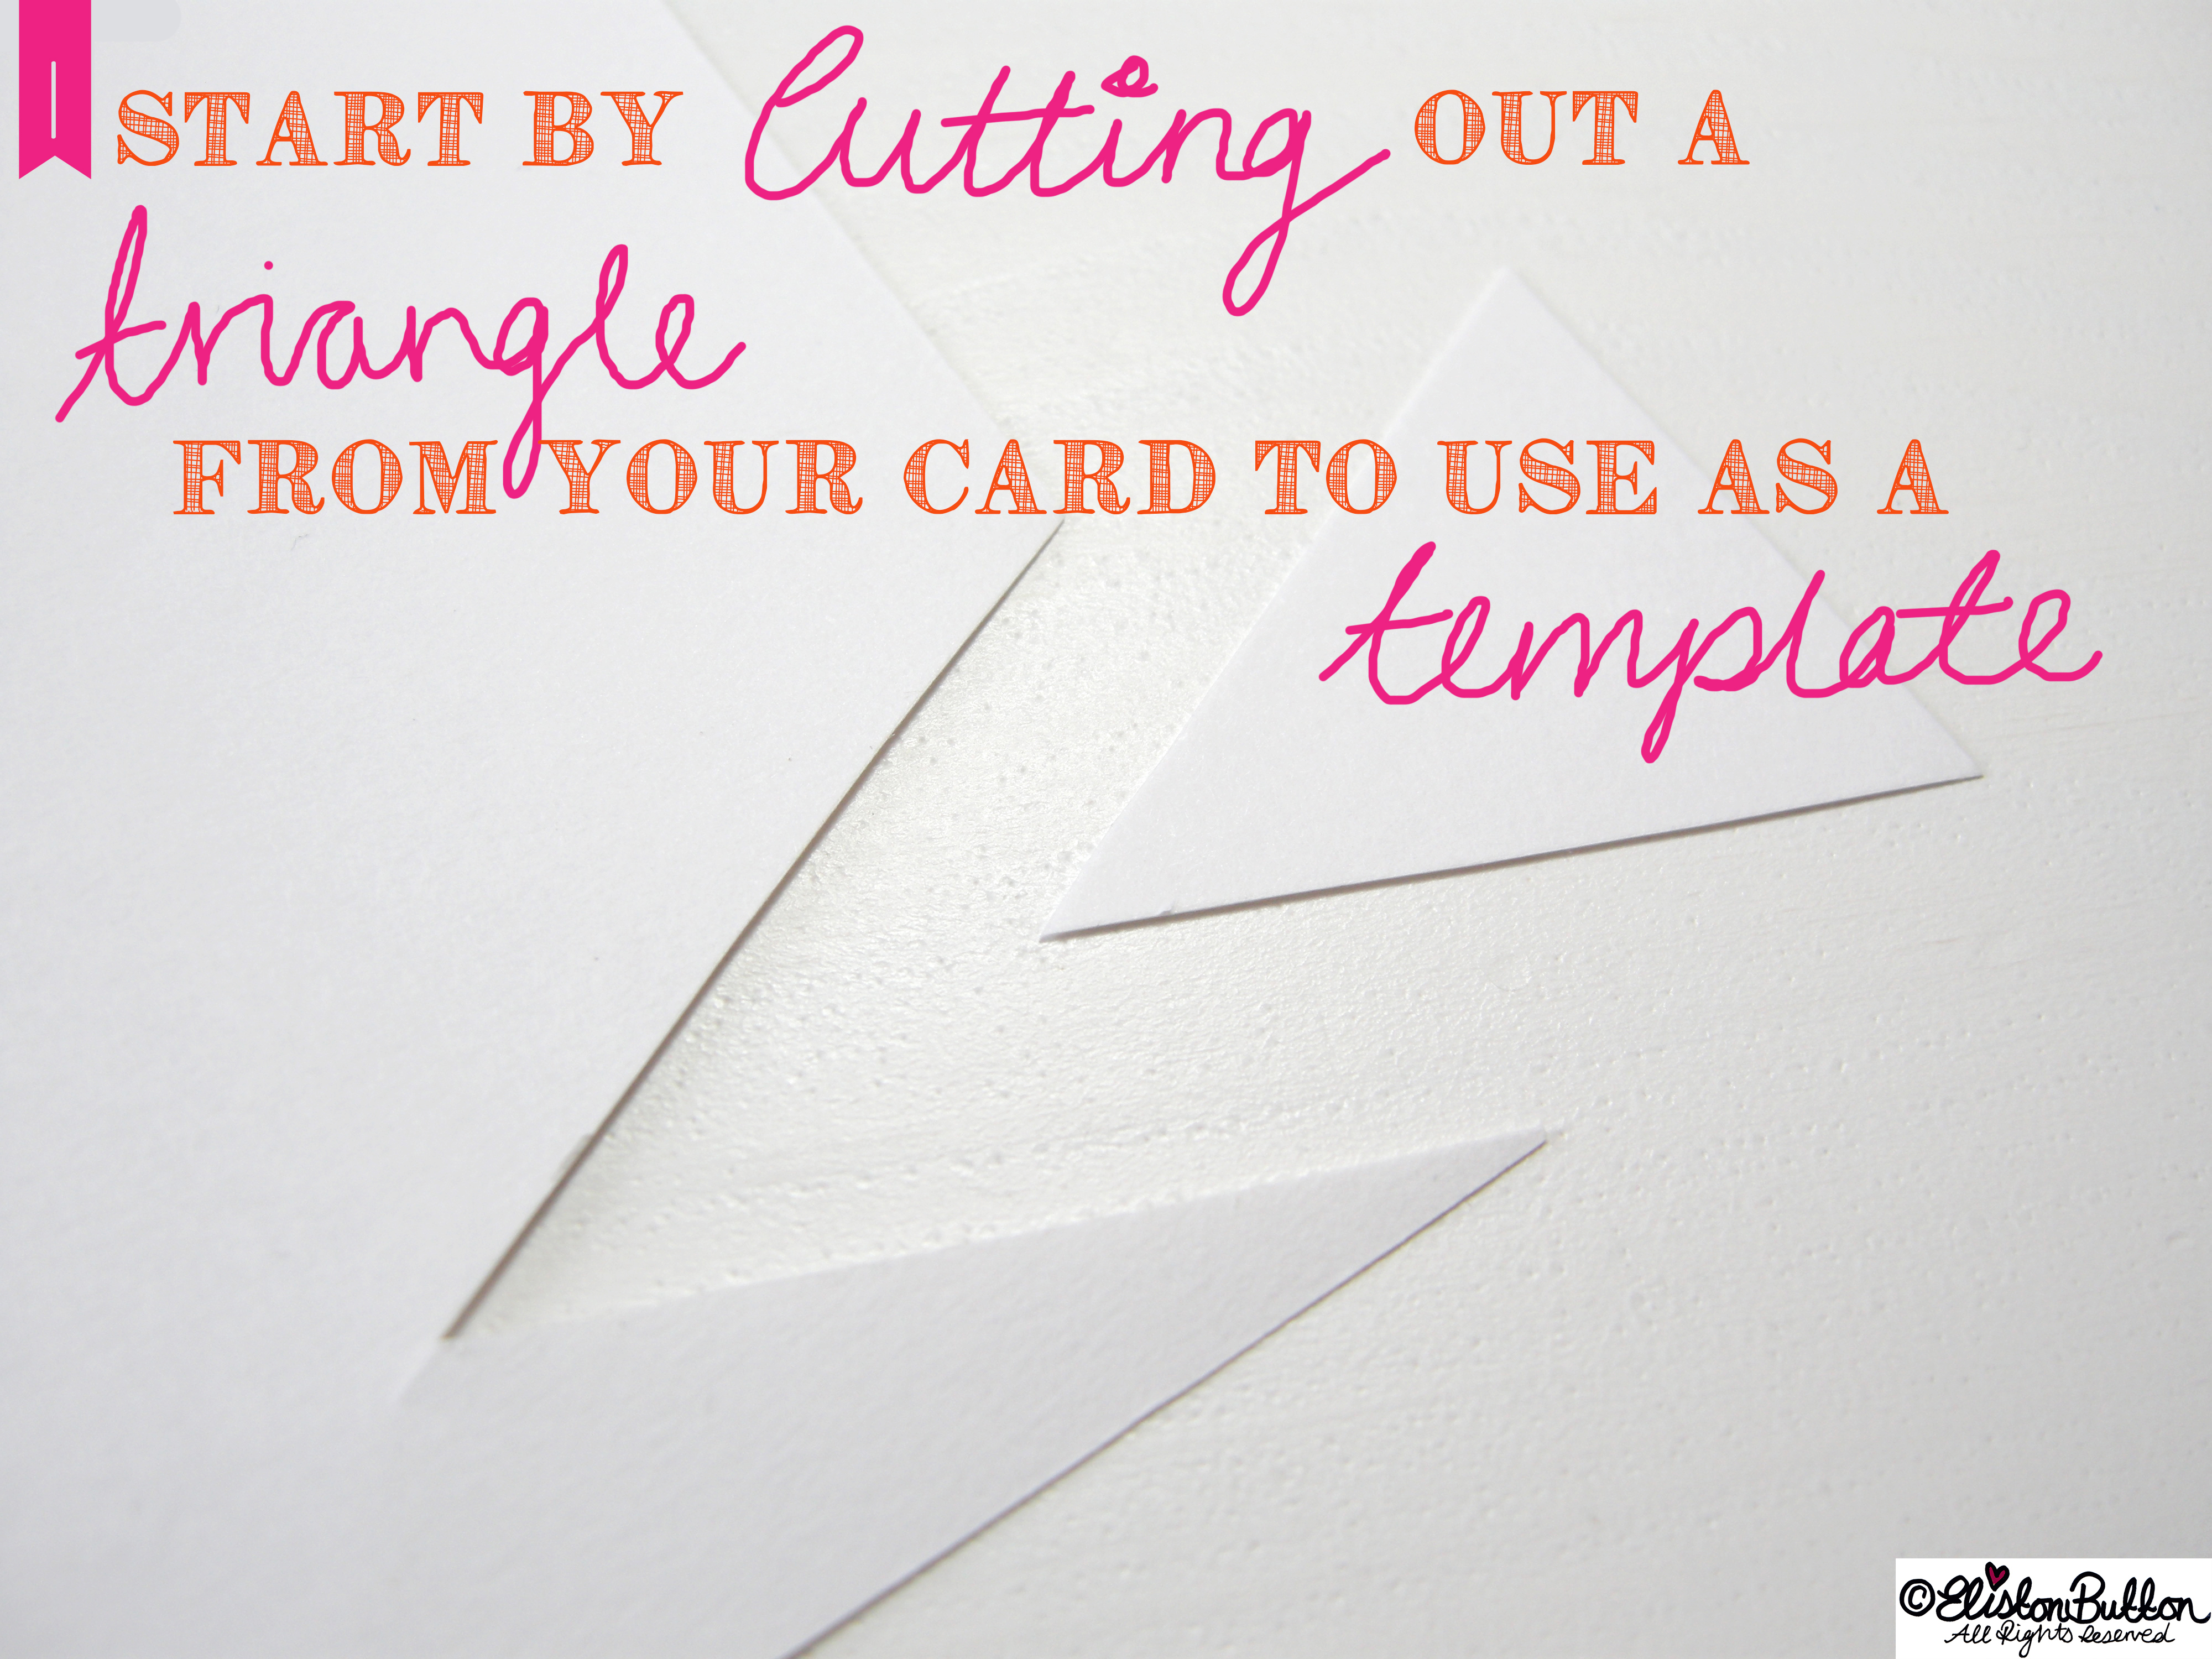 Cutting Out a Card Template - Washi Tape Bunting Tutorial at www.elistonbutton.com - Eliston Button - That Crafty Kid – Art, Design, Craft & Adventure.